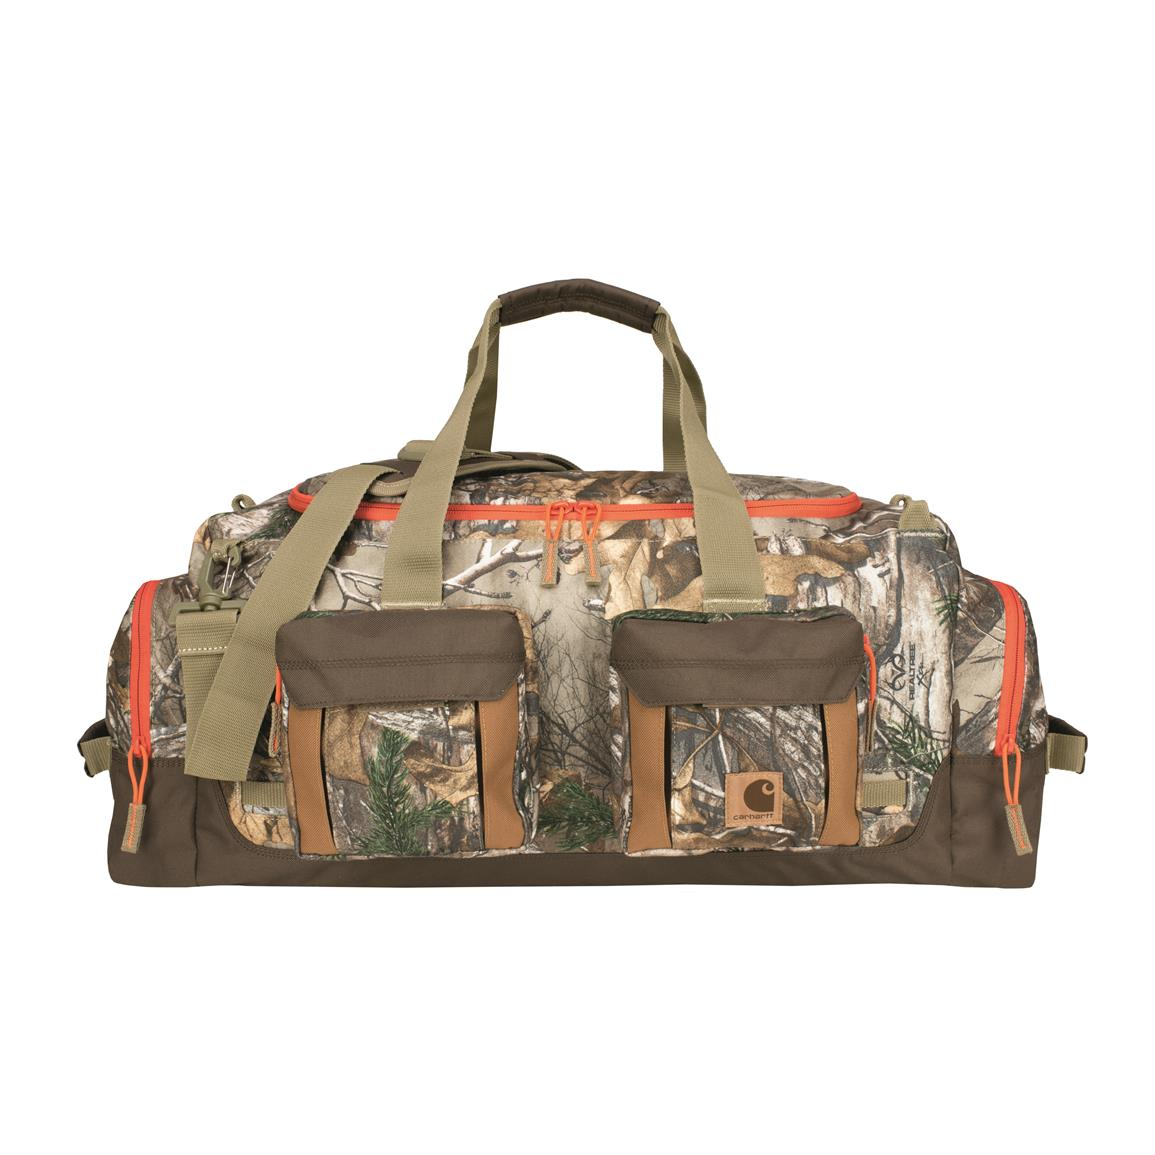 Carhartt Hunt Camo Duffel Bag